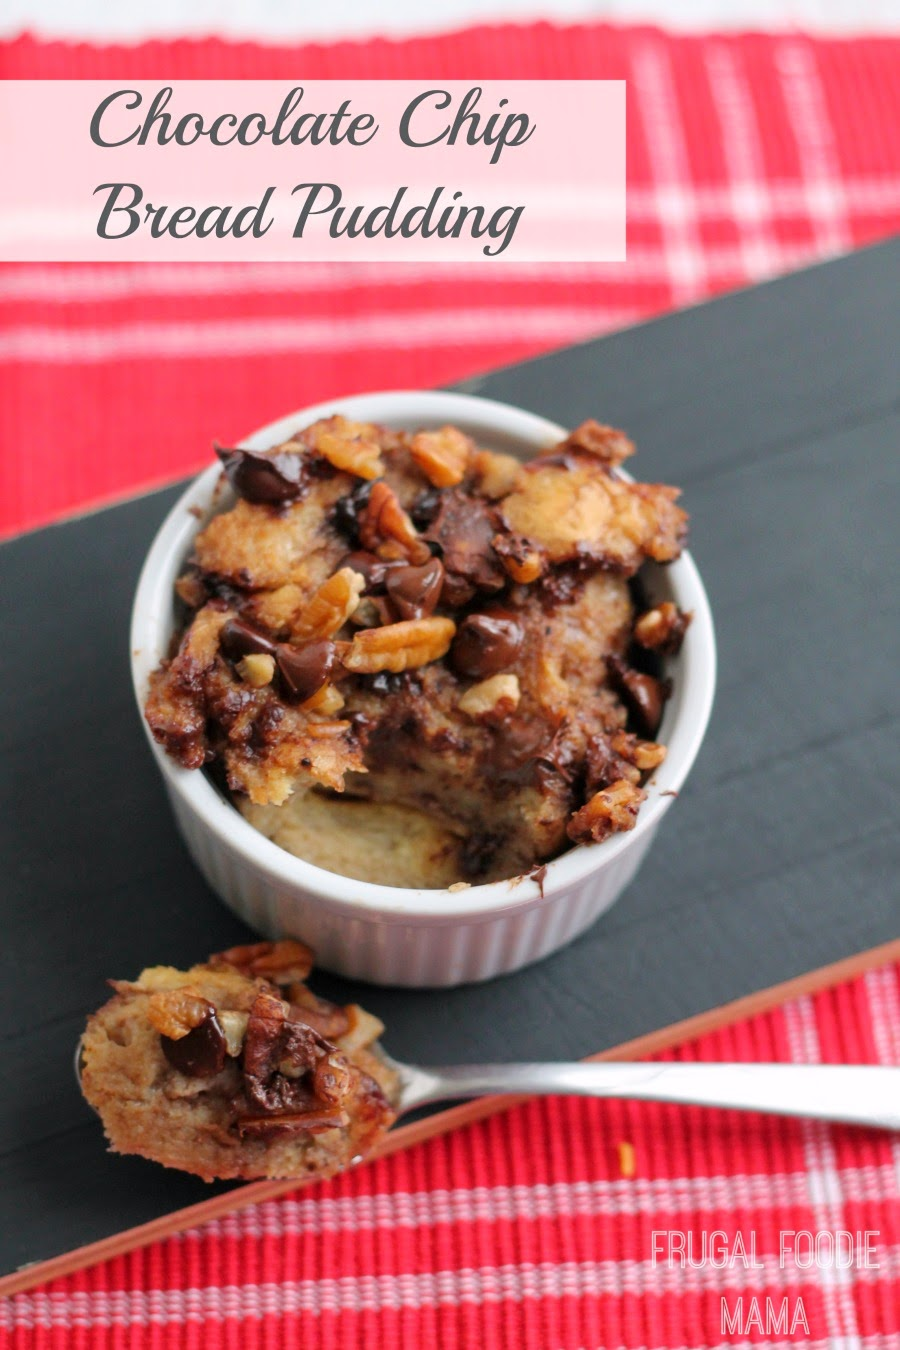 This velvety and creamy slow cooker-baked Chocolate Chip Bread Pudding is a lightened-up version of a traditionally decadent dessert